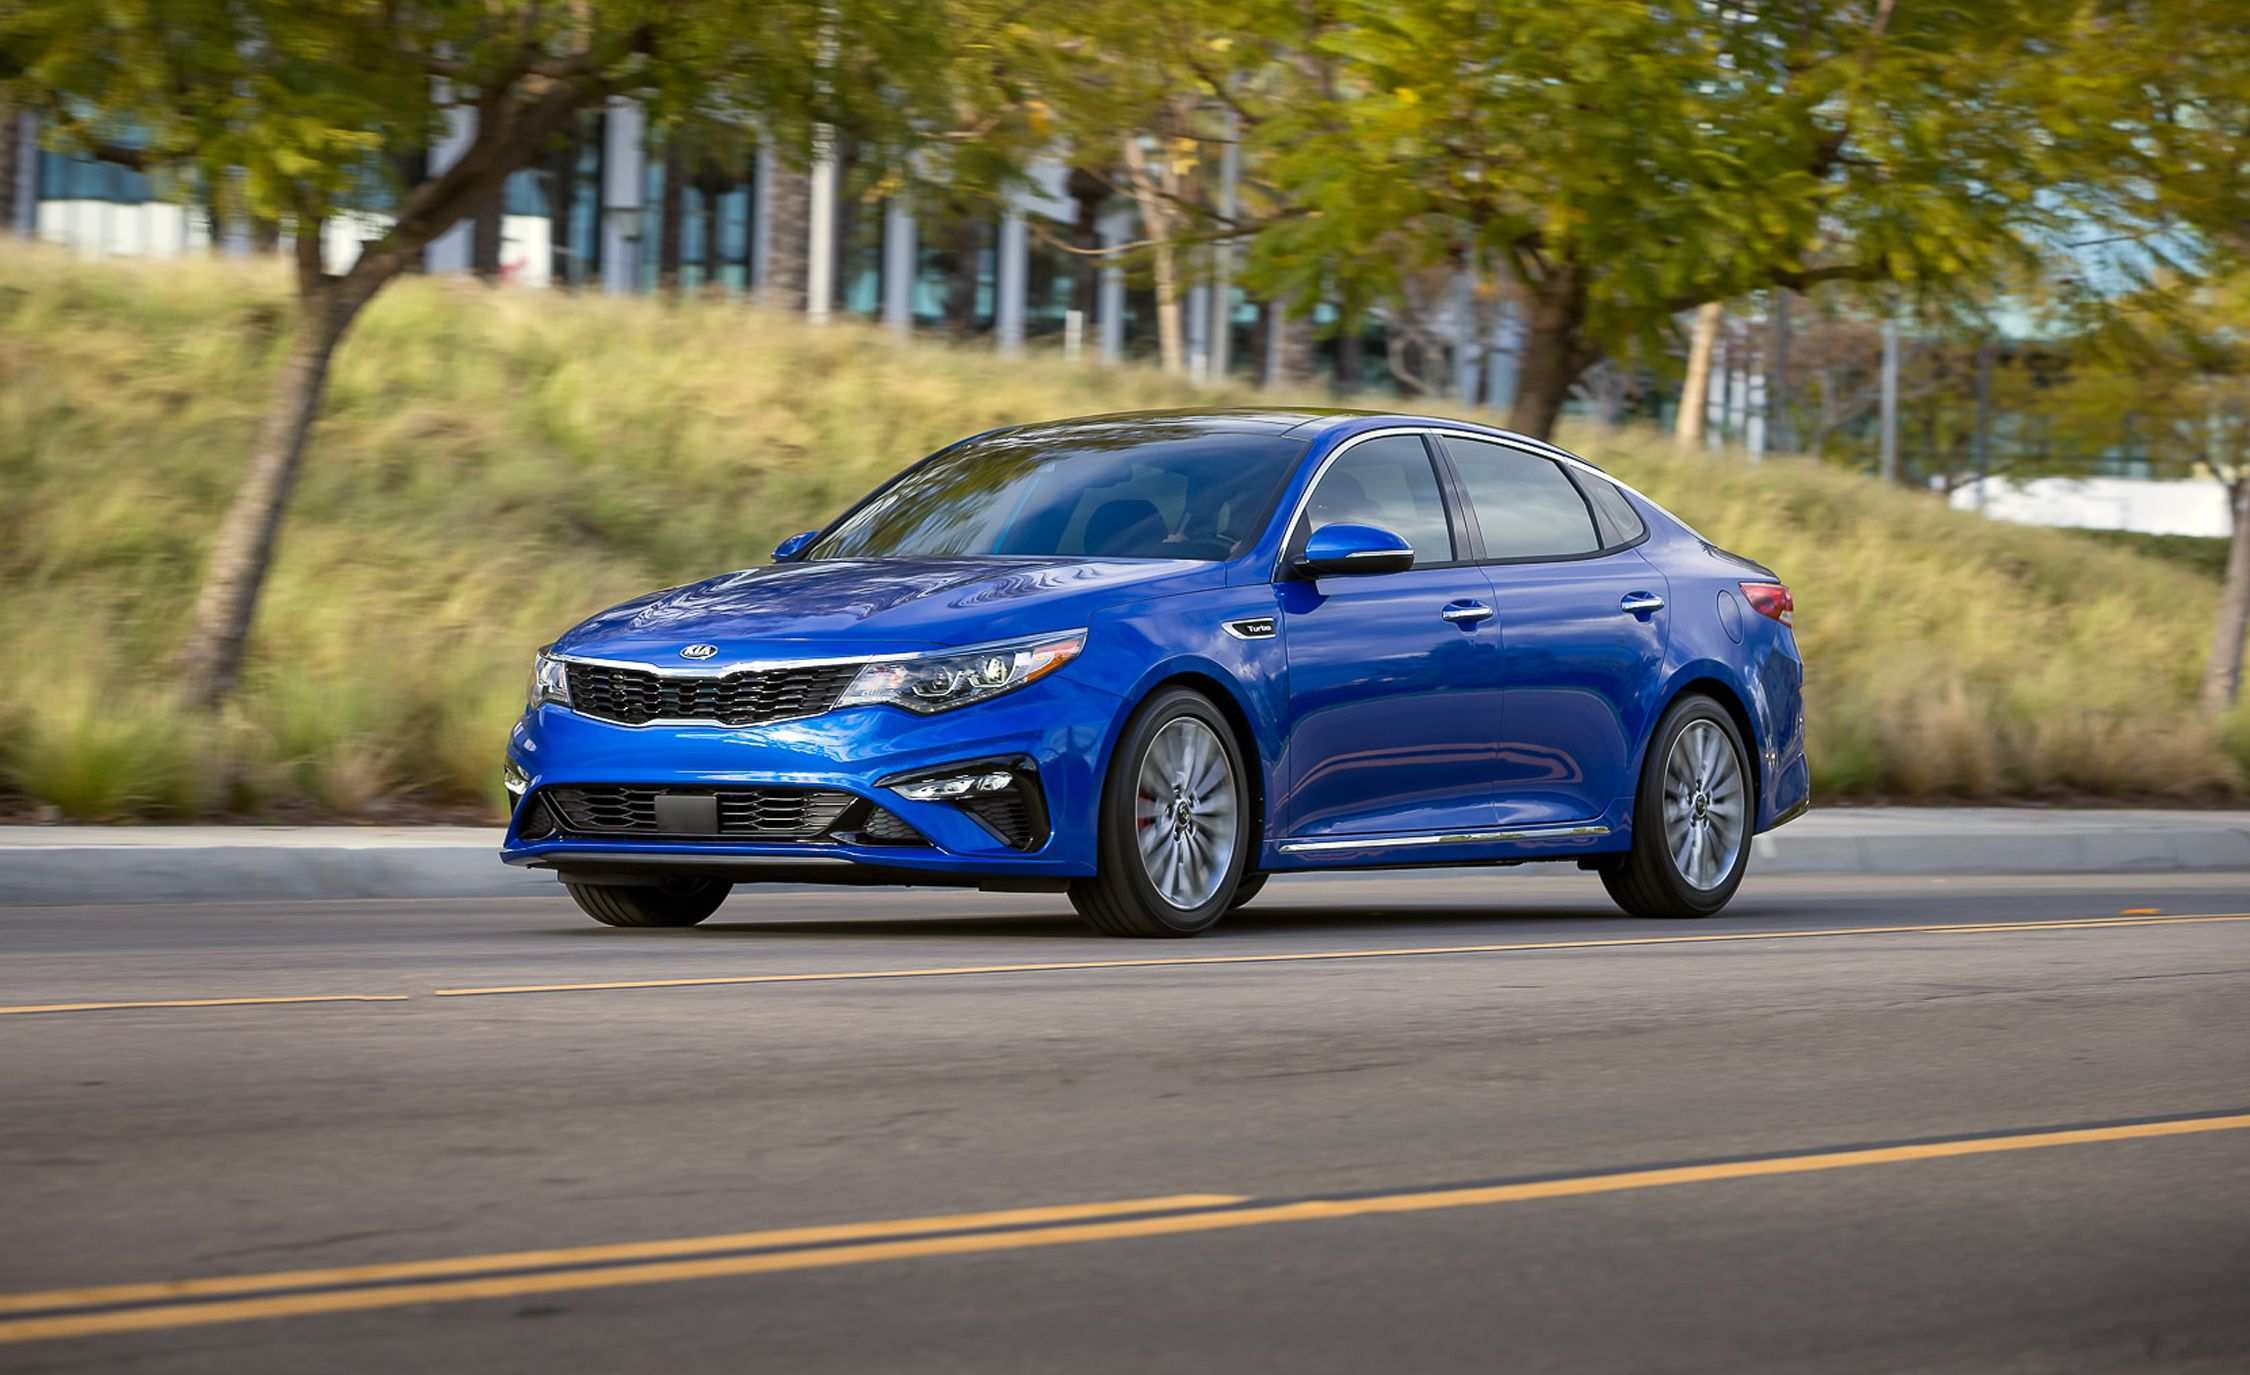 69 Great The Kia Optima Hybrid 2019 Picture Release Date And Review Performance and New Engine for The Kia Optima Hybrid 2019 Picture Release Date And Review